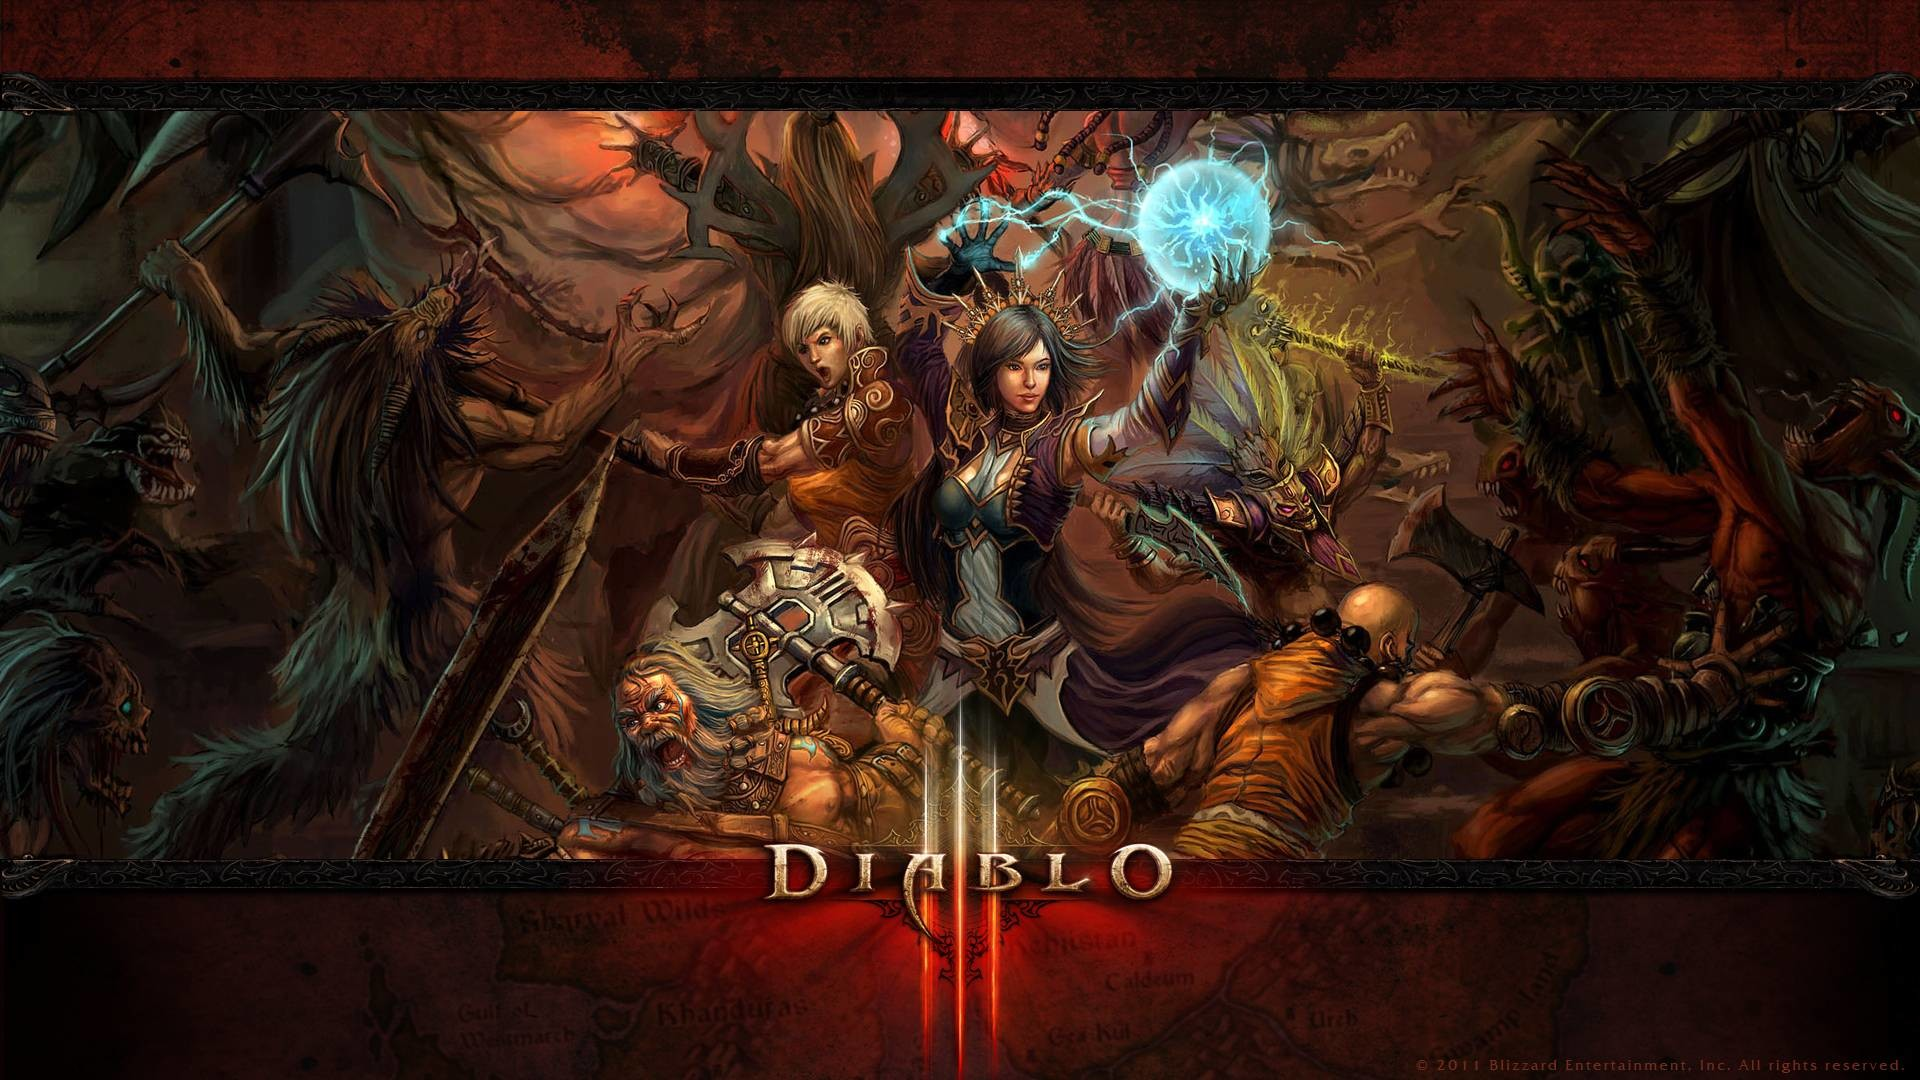 Res: 1920x1080, Wallpapers - Media - Diablo III